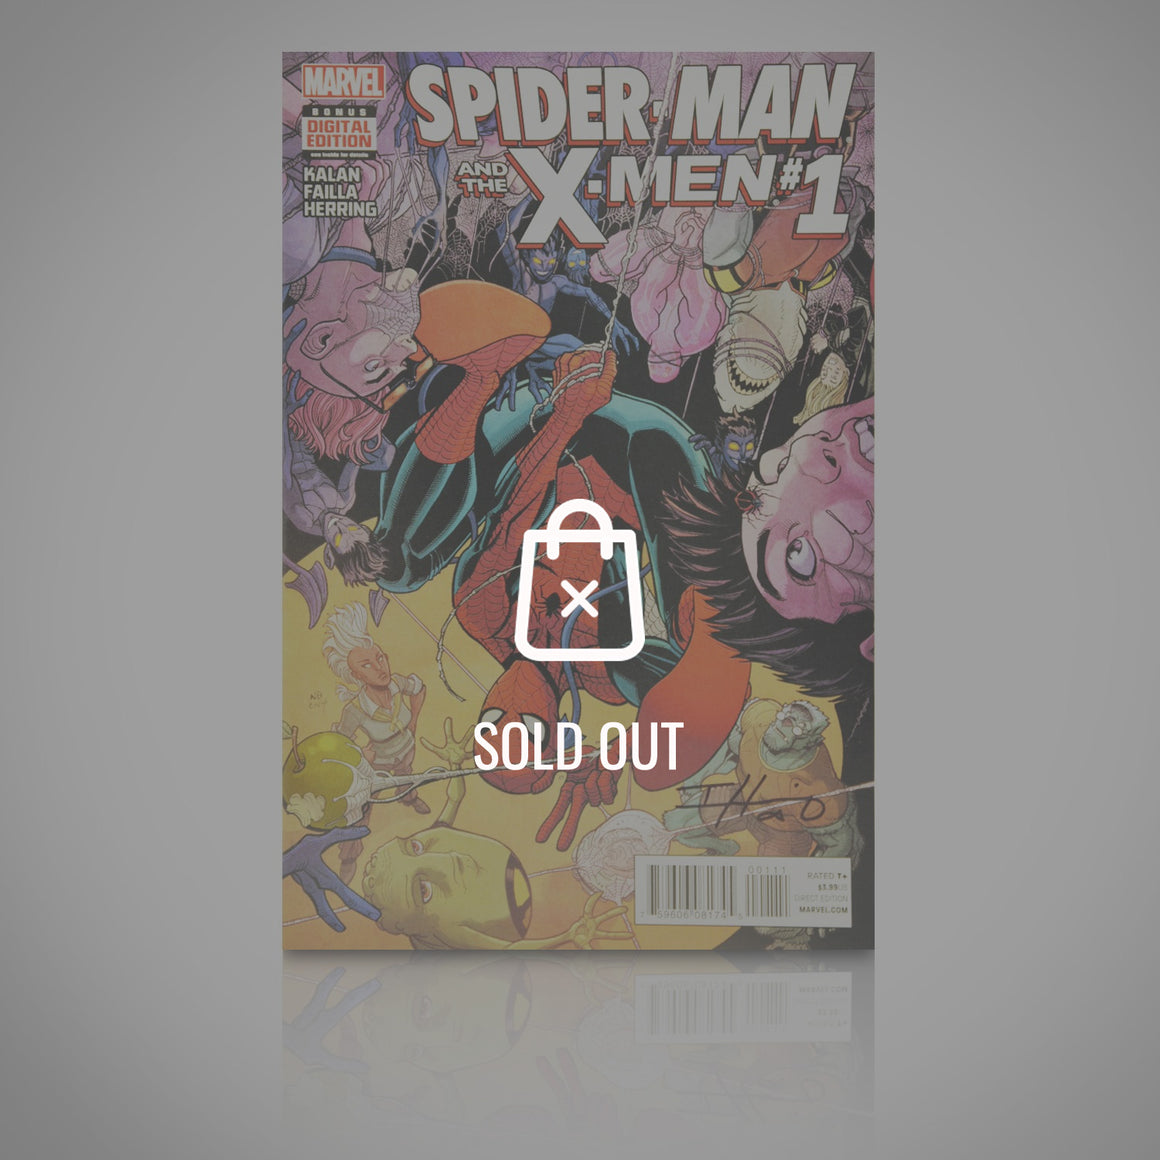 'SPIDERMAN & THE X-MEN #1 - HANDSIGNED BY IAN HERRING' Comic Book